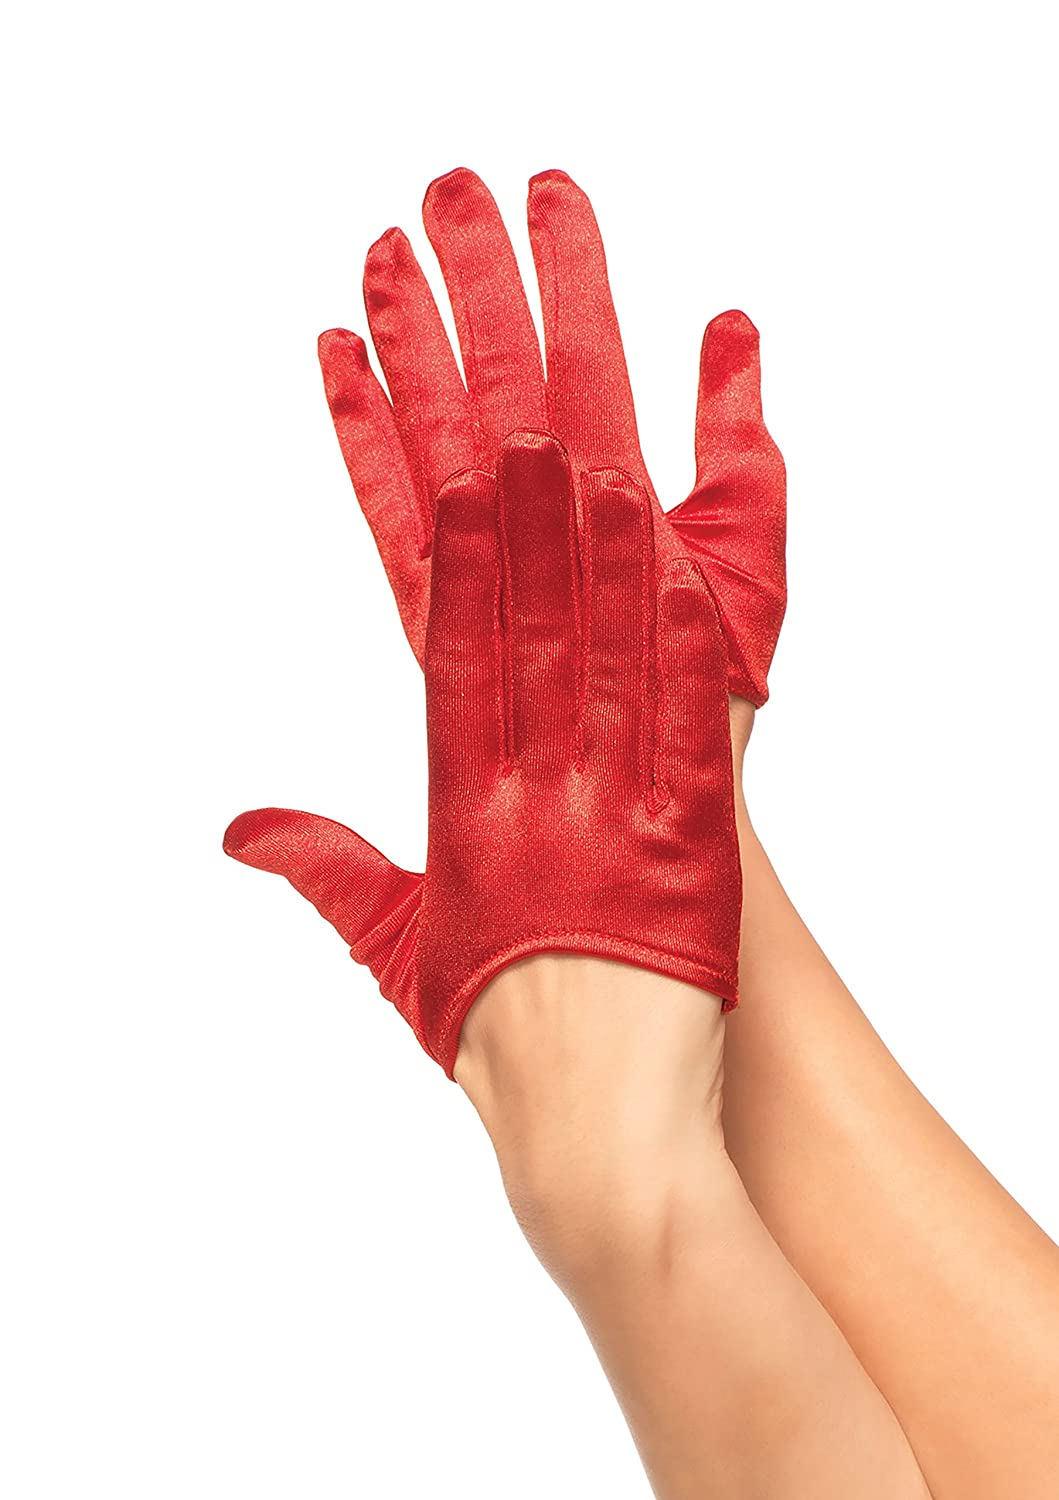 Women's Mini Cropped Red Satin Gloves